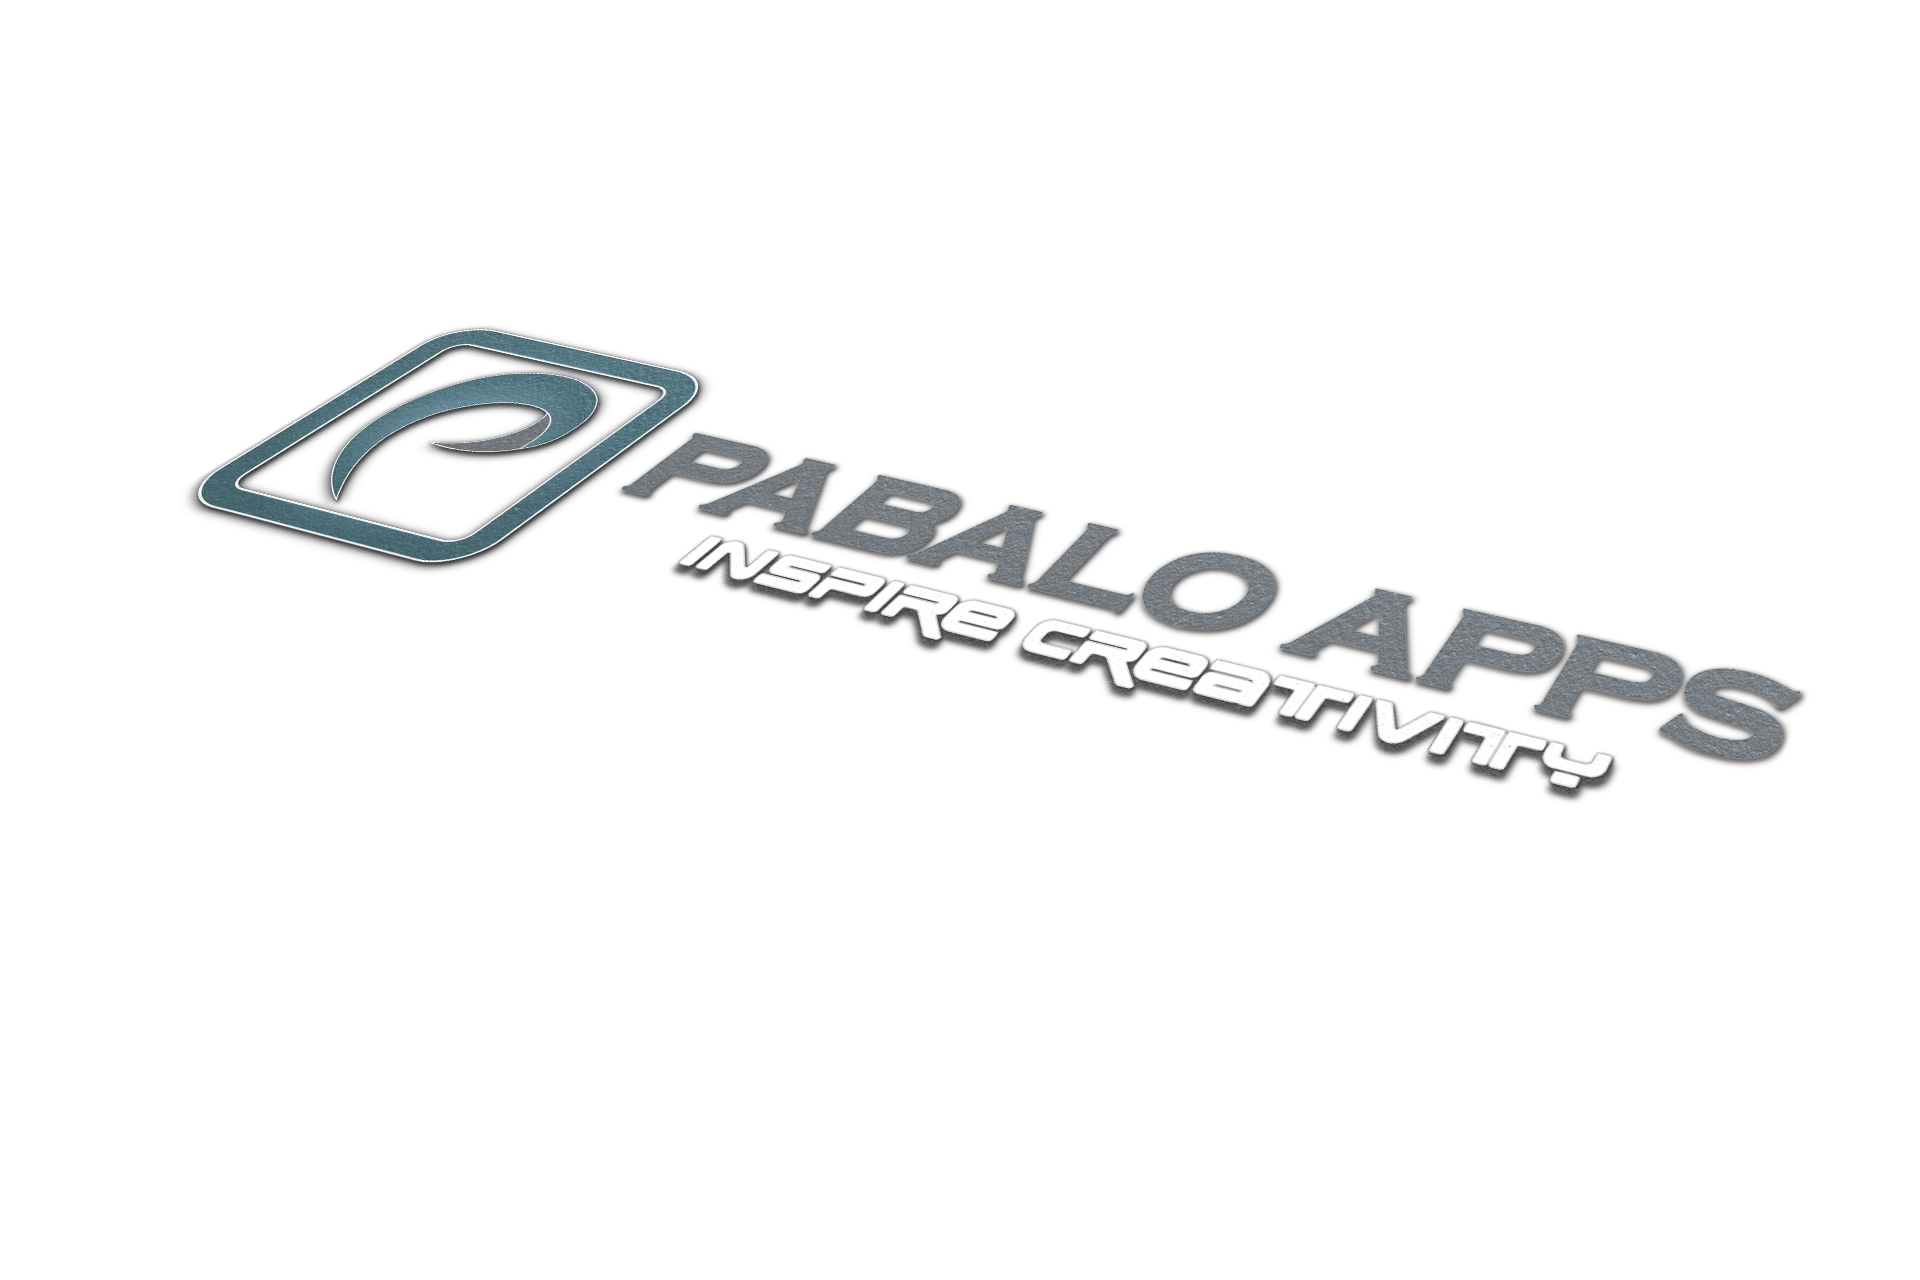 About Pabalo Apps